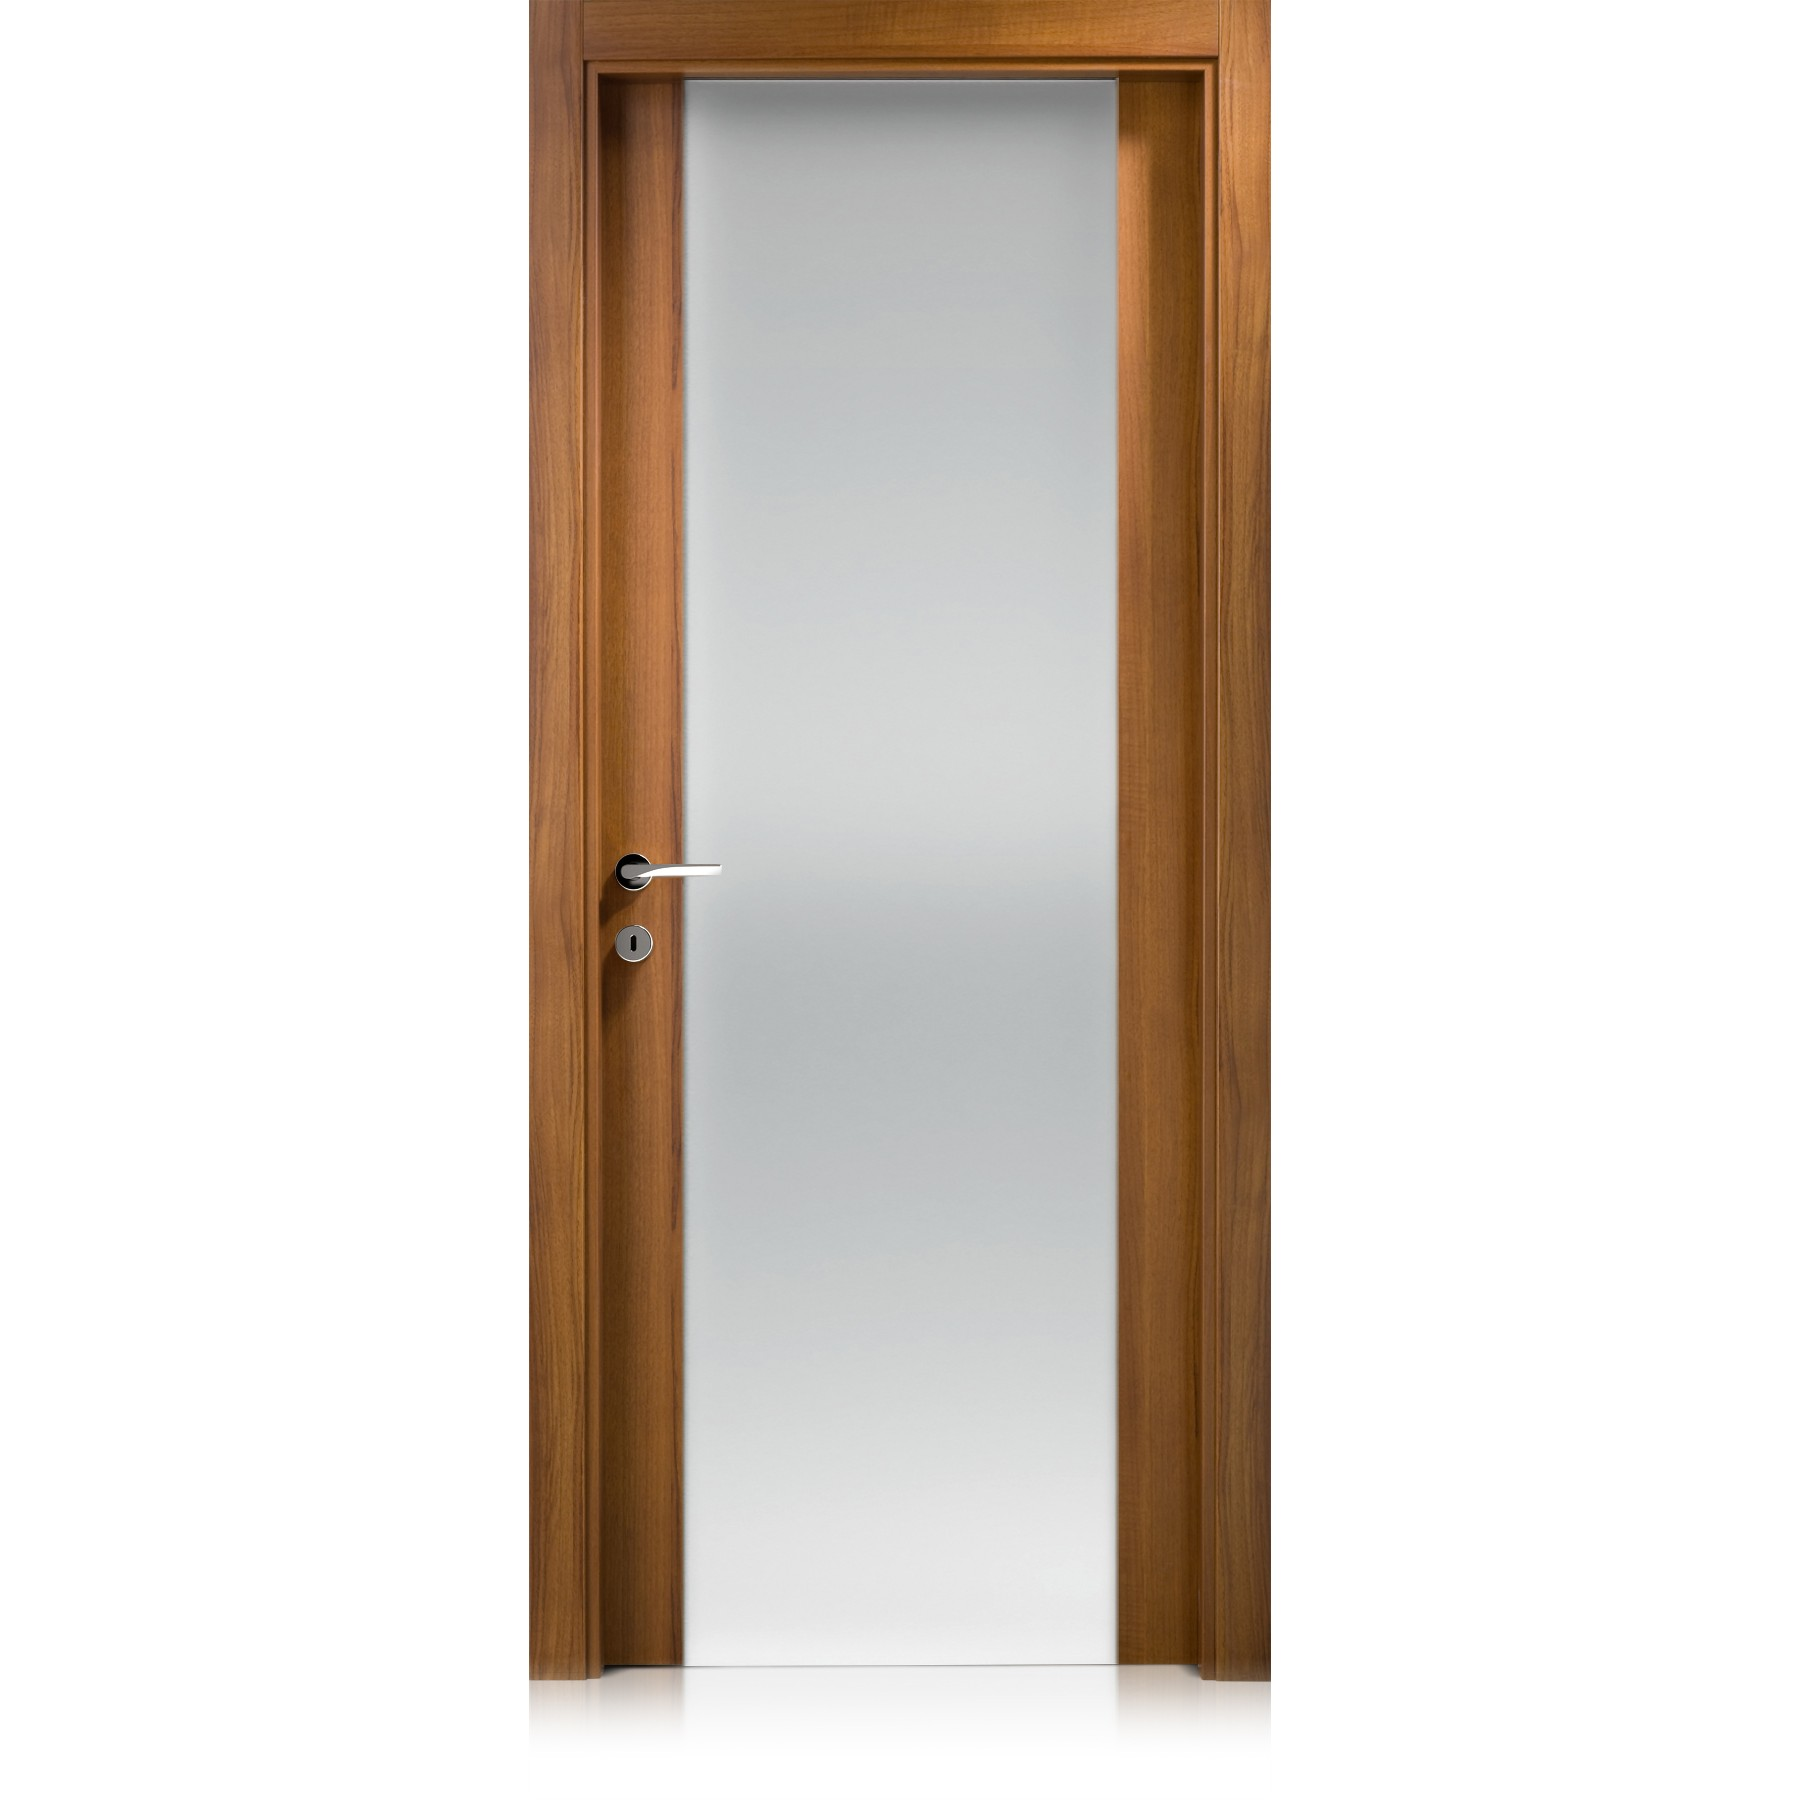 Liss Vetro Large noce door